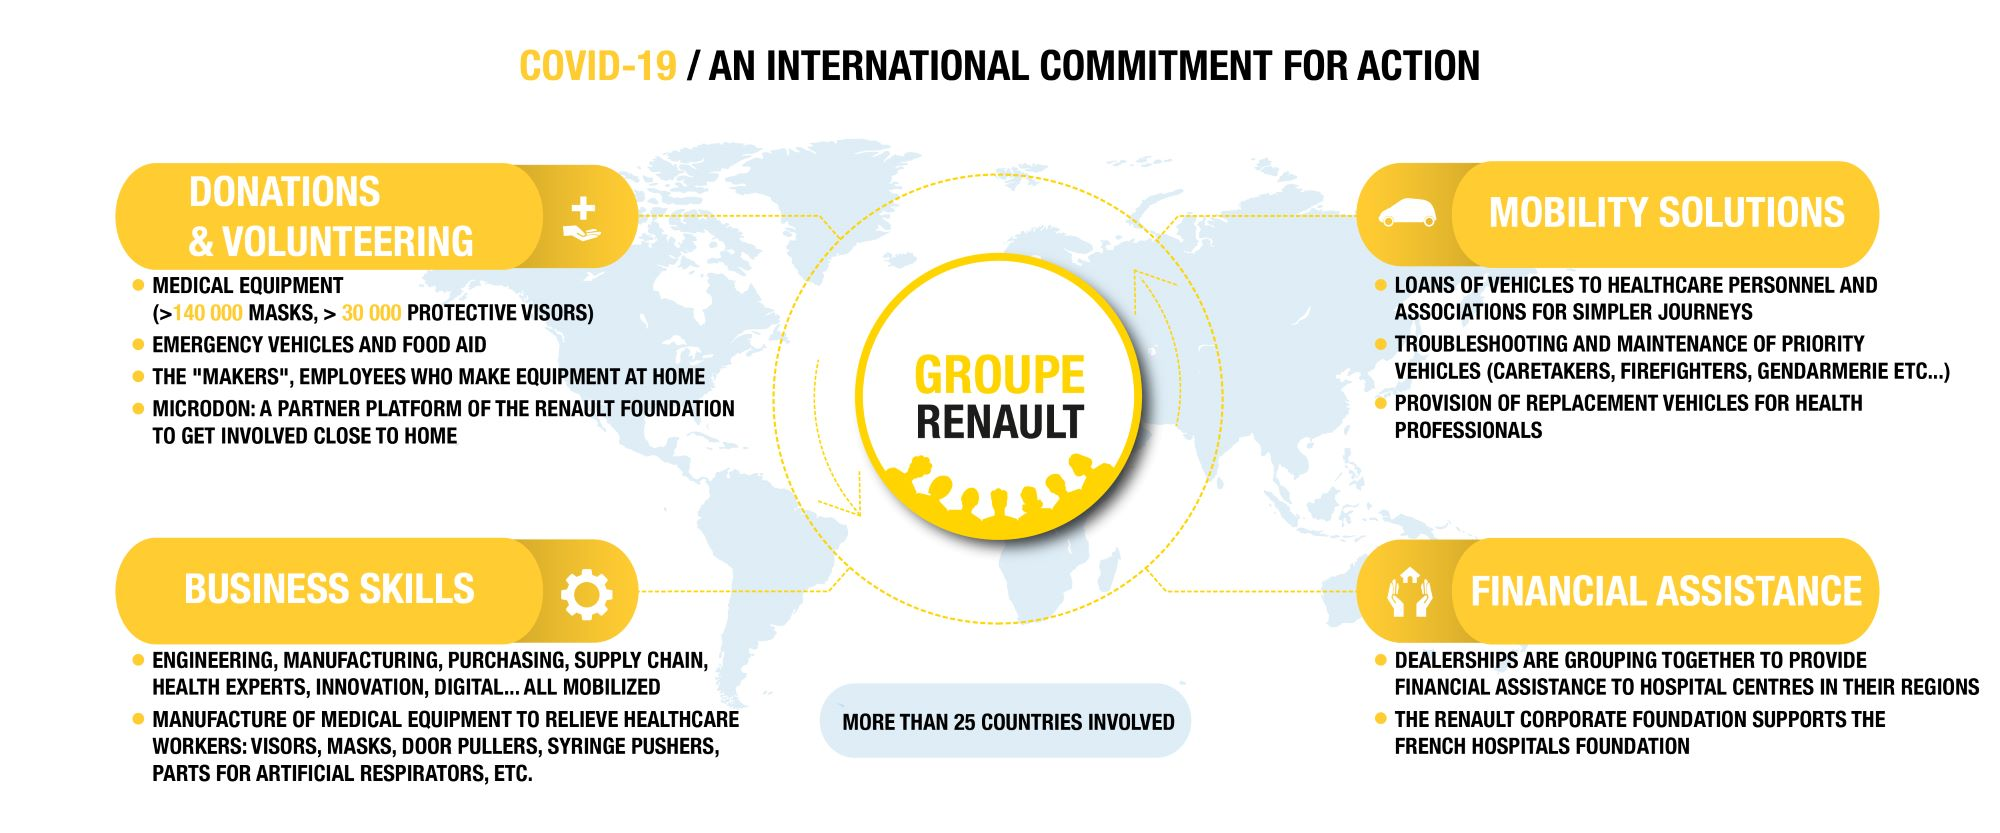 international commitment Groupe Renault